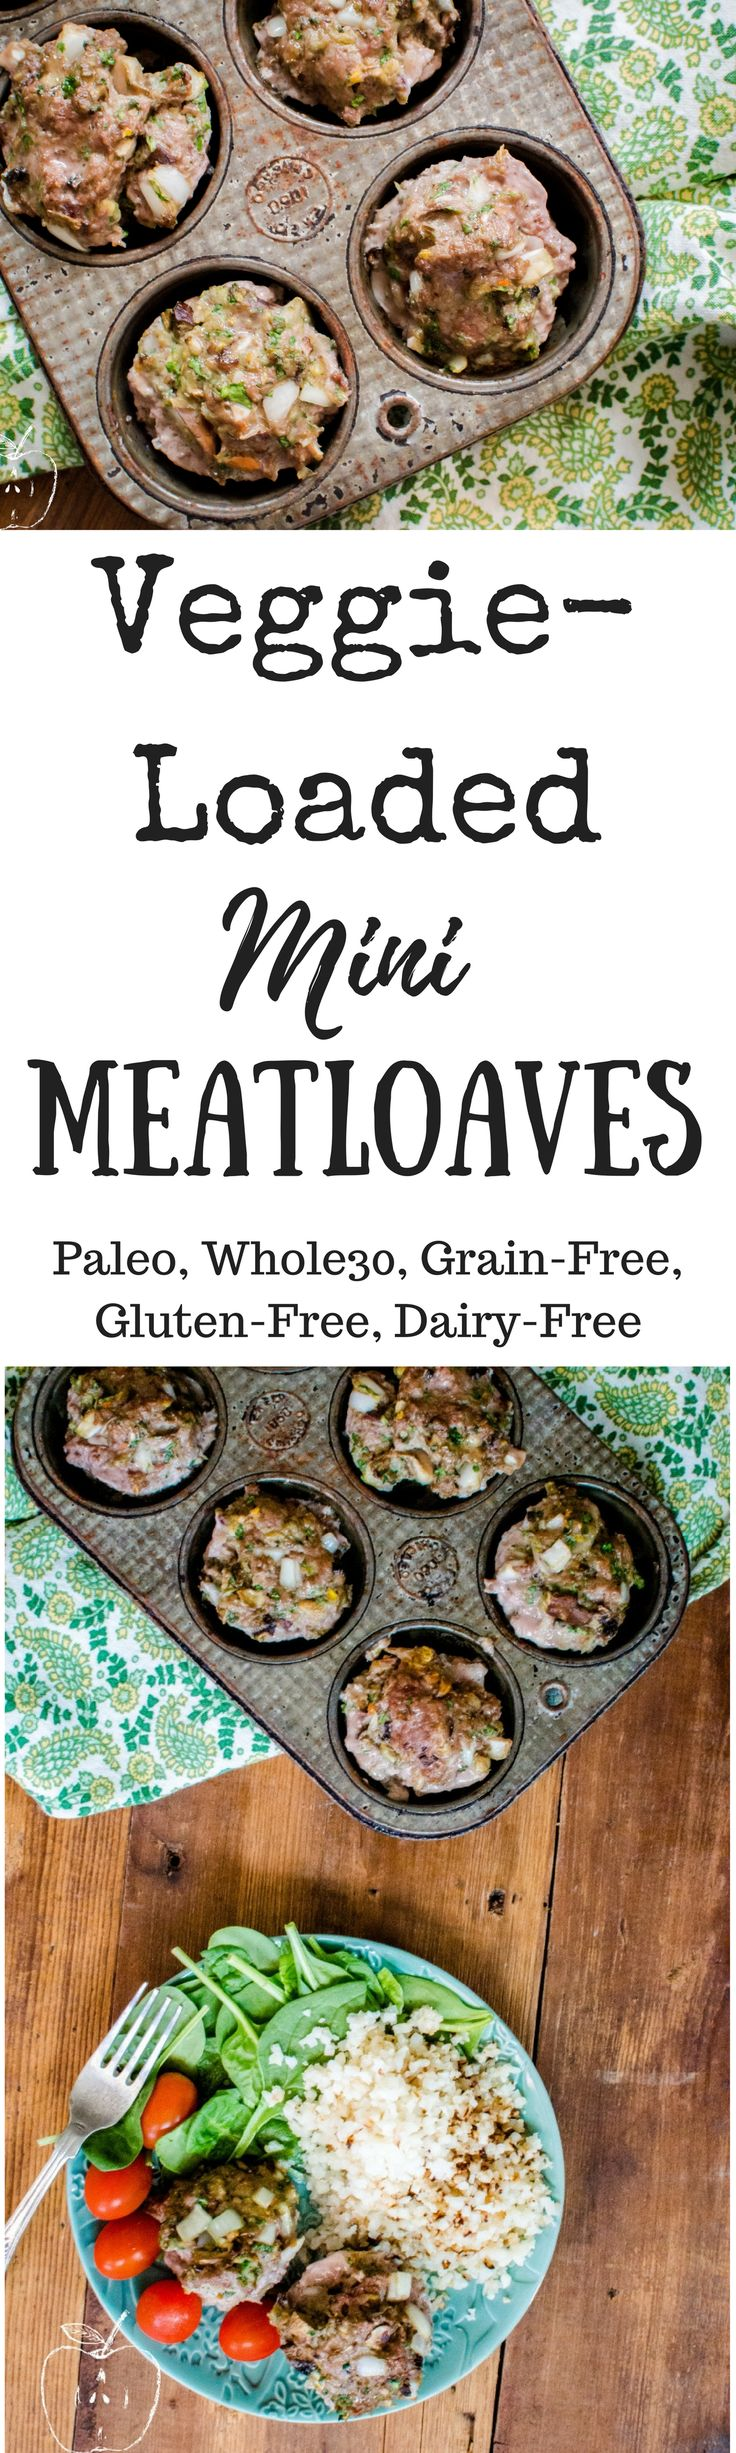 Veggie-Loaded Mini Meatloaves are the perfect quick, healthy dinner that delicious and super family-friendly! Paleo, Whole30, dairy-free, gluten free